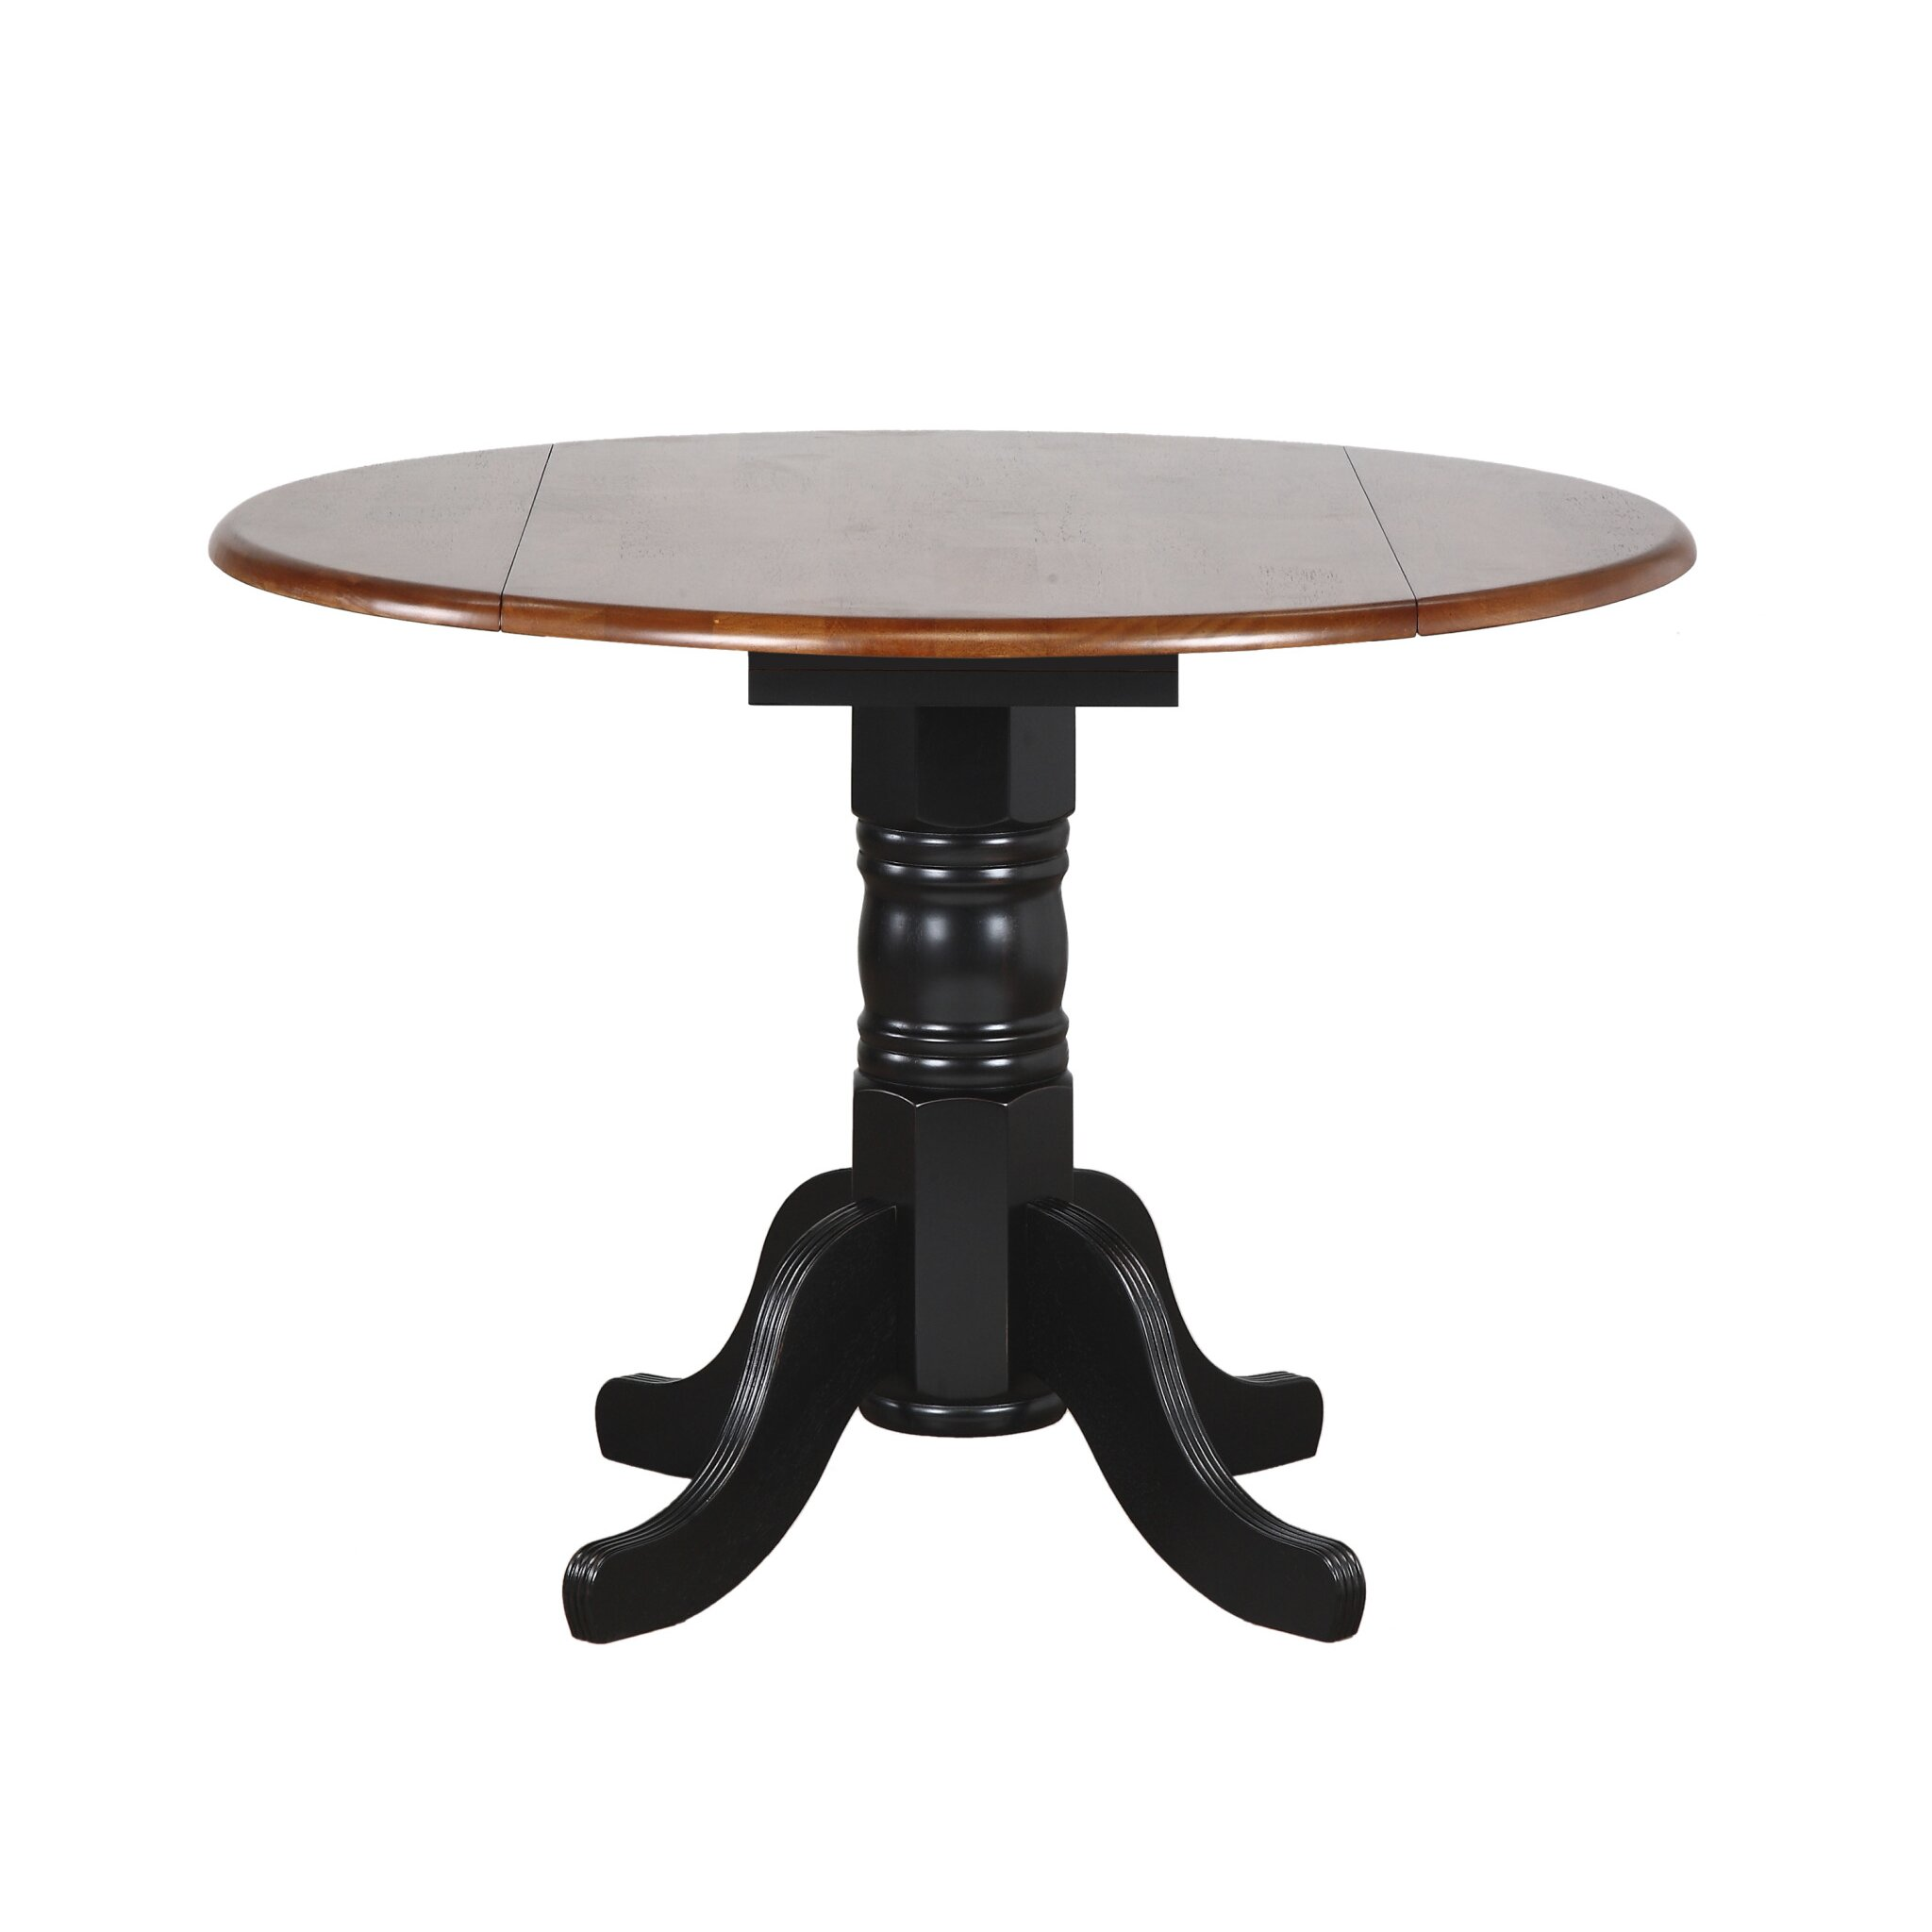 Loon Peak Banksville Extendable Dining Table amp Reviews  : Loon Peak25C225AE Banksville Extendable Dining Table from www.wayfair.com size 2048 x 2048 jpeg 176kB